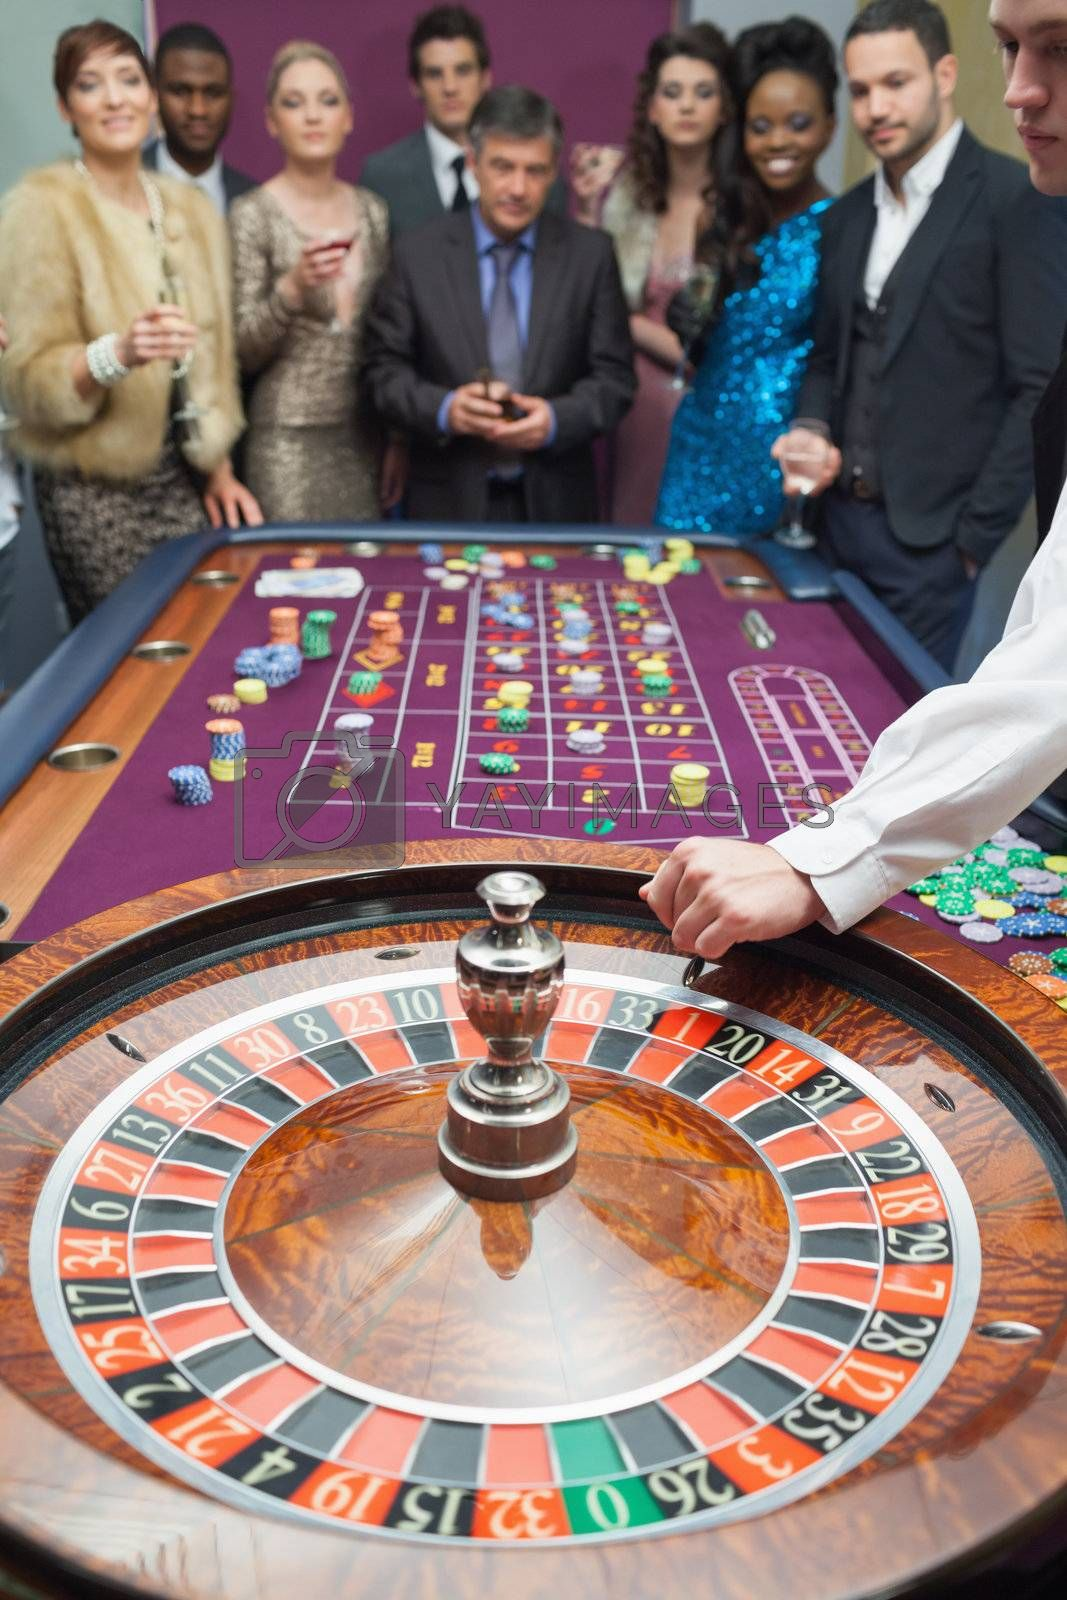 People standing at the roulette table in casino